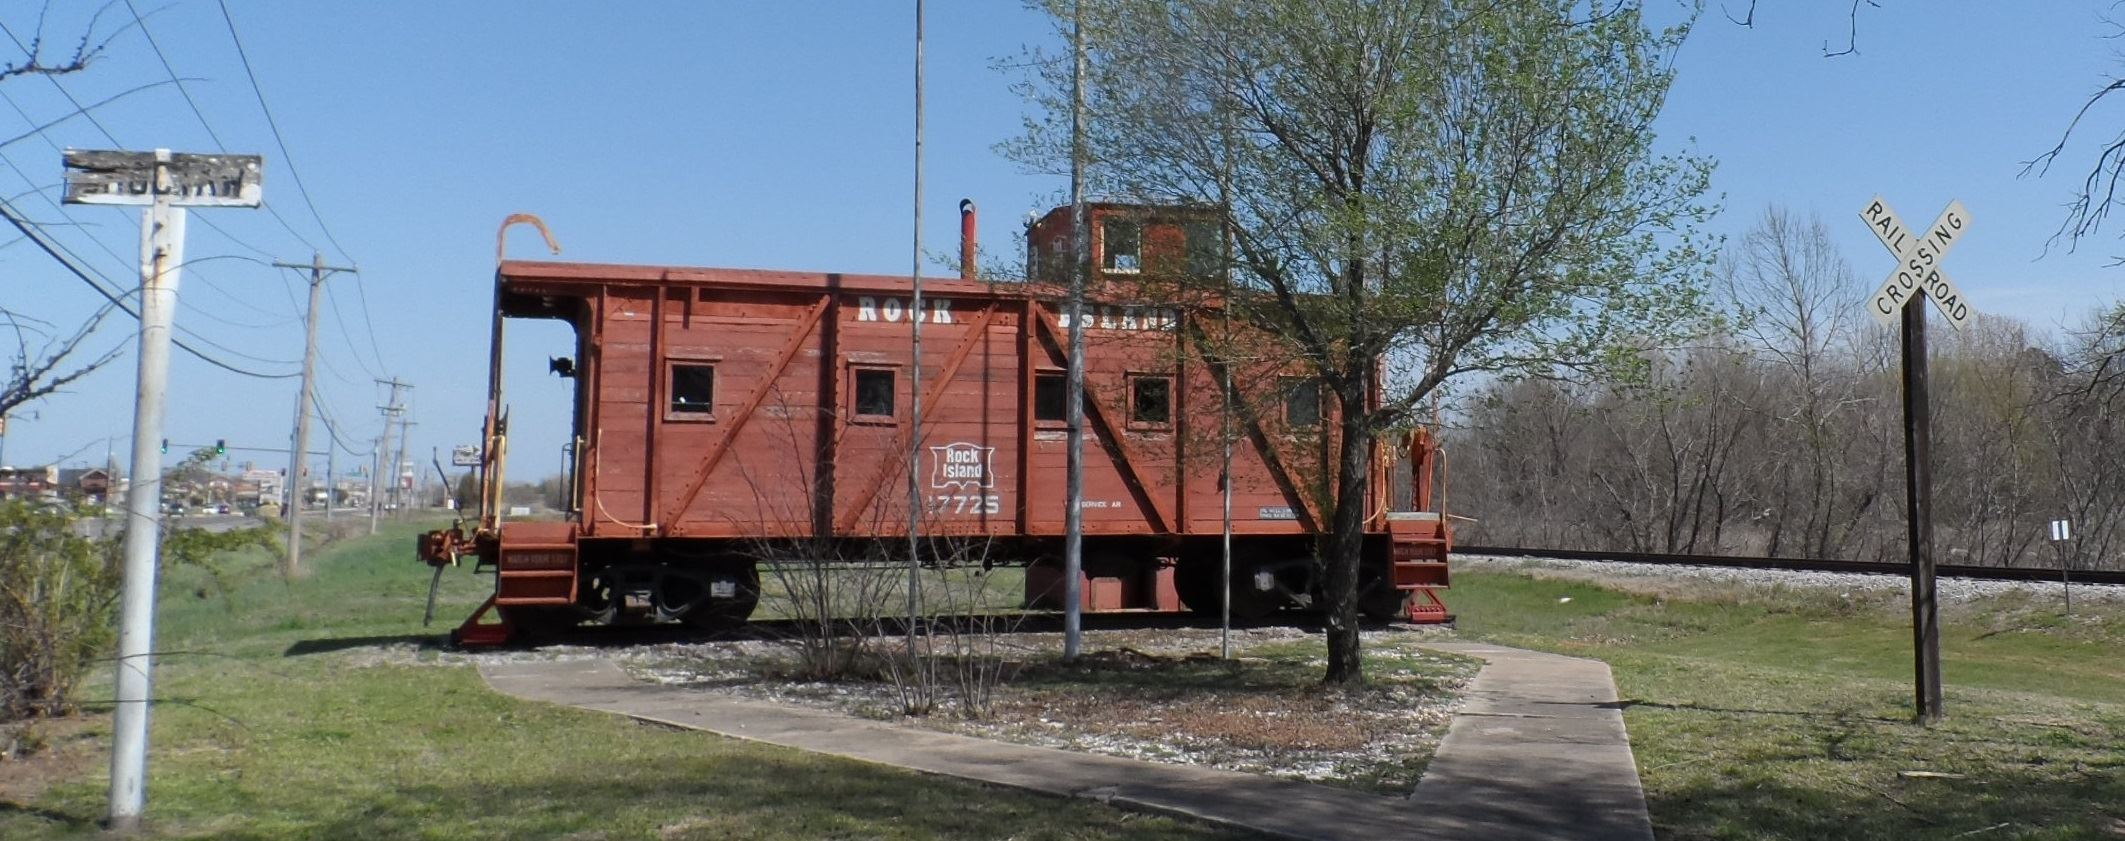 Rock Island caboose long view from parking area